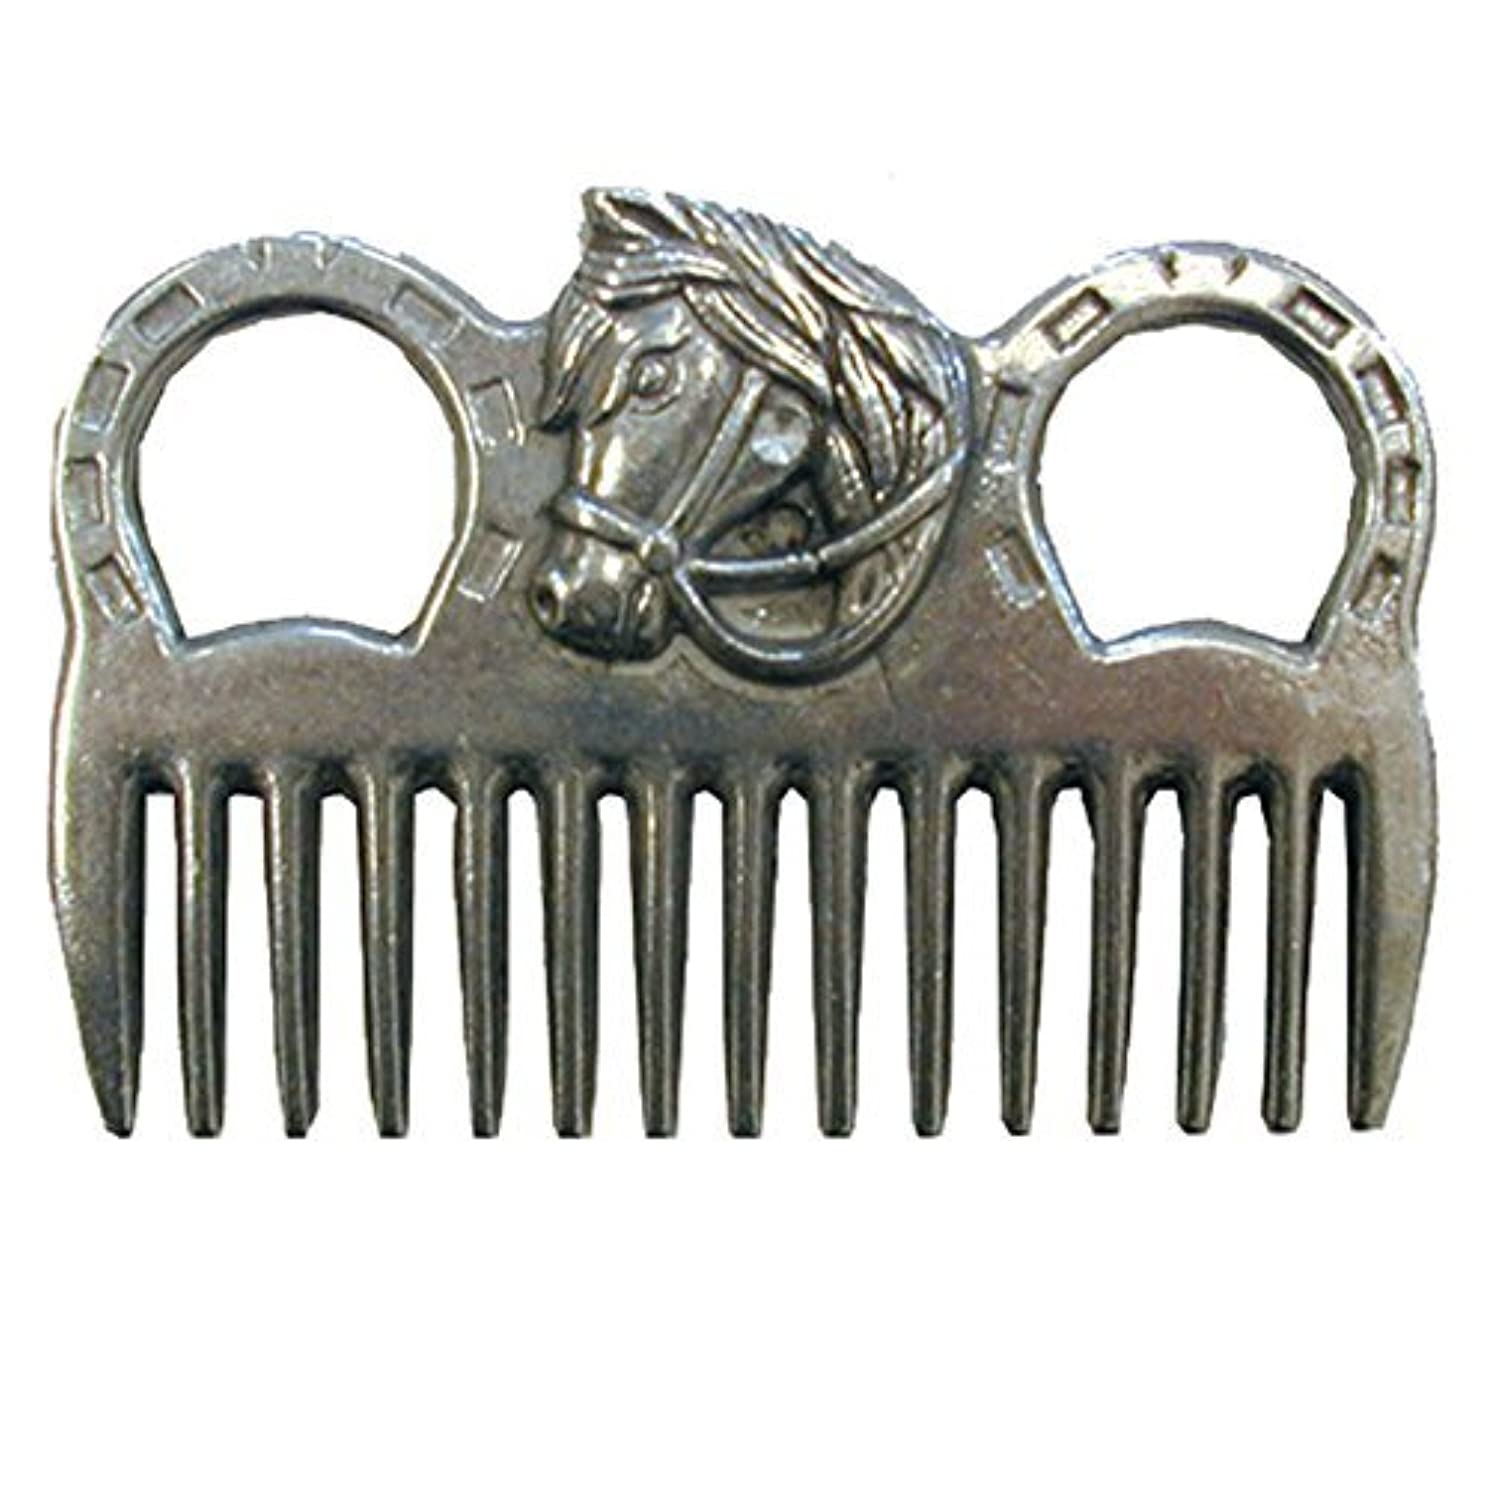 Intrepid International - MANE COMB ALUMINUM W/HORSEHEAD [並行輸入品]